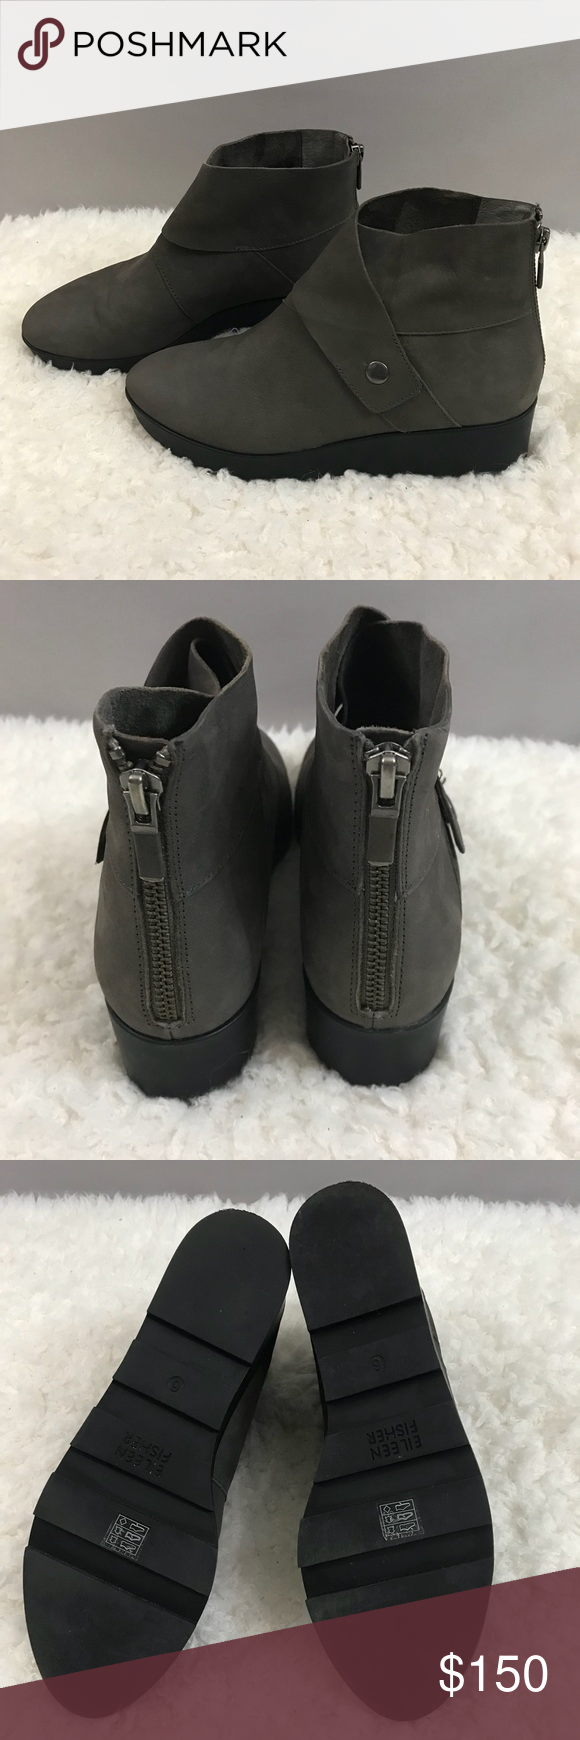 a289503ec13 Eileen Fisher Tread Wedge Booties NEW! Eileen Fisher Tread Wedge Booties.  Size 6. New without the box. Wedge height 2 inches